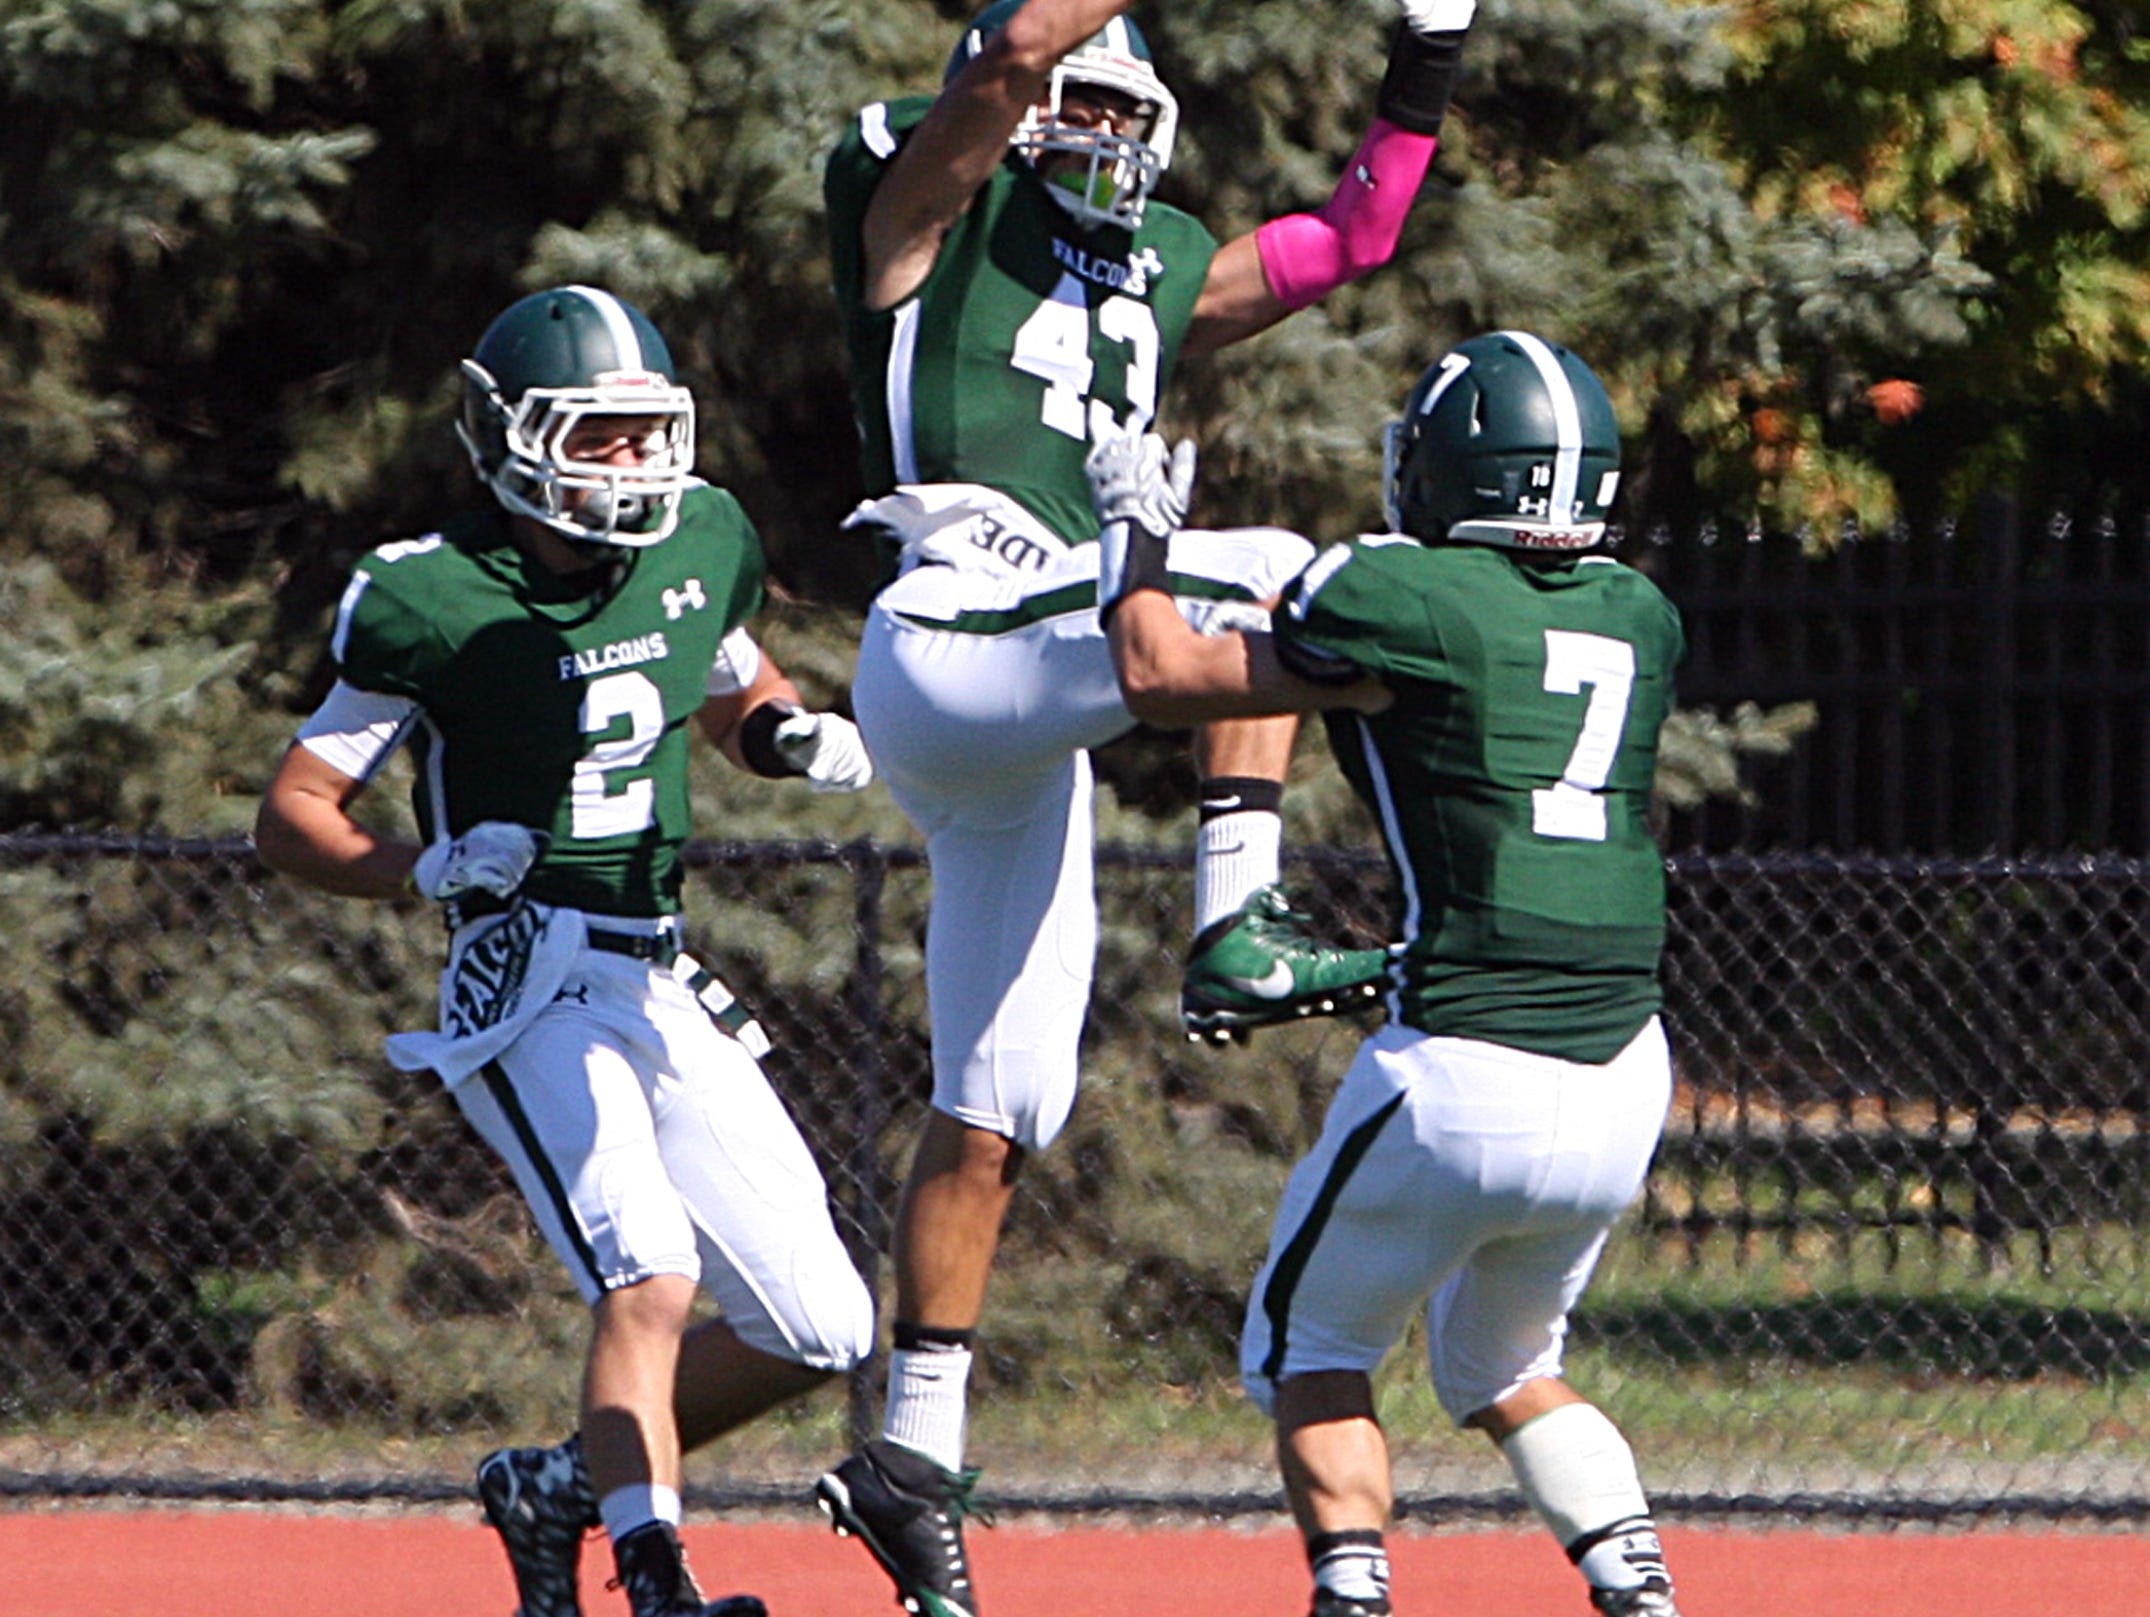 Action photos from the Perth Amboy High School at St. Joseph football game held at St. Joseph's new turf field in Metuhen on Saturday October 10, 2015. Here St. Joseph's # 43 (center)Joe Papa celebrates with team mates his 1st half touchdown.